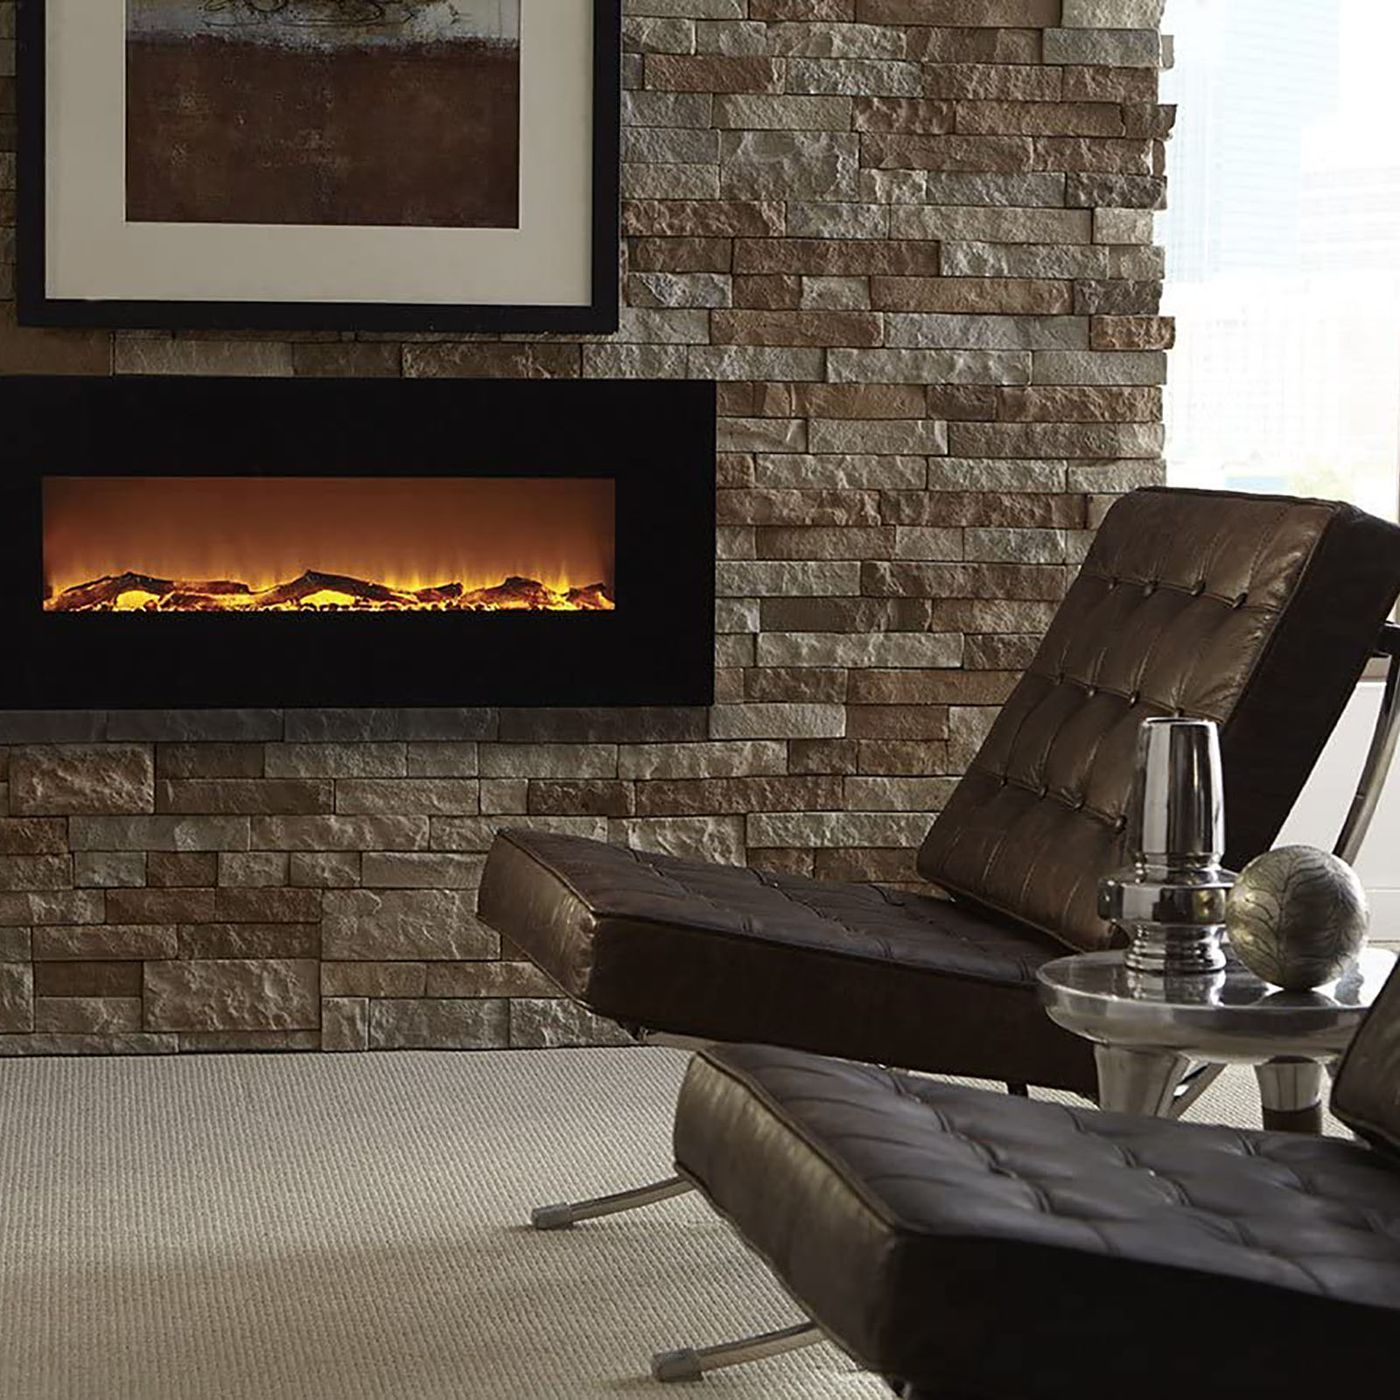 The 20 Best Electric Fireplaces 20   This Old House